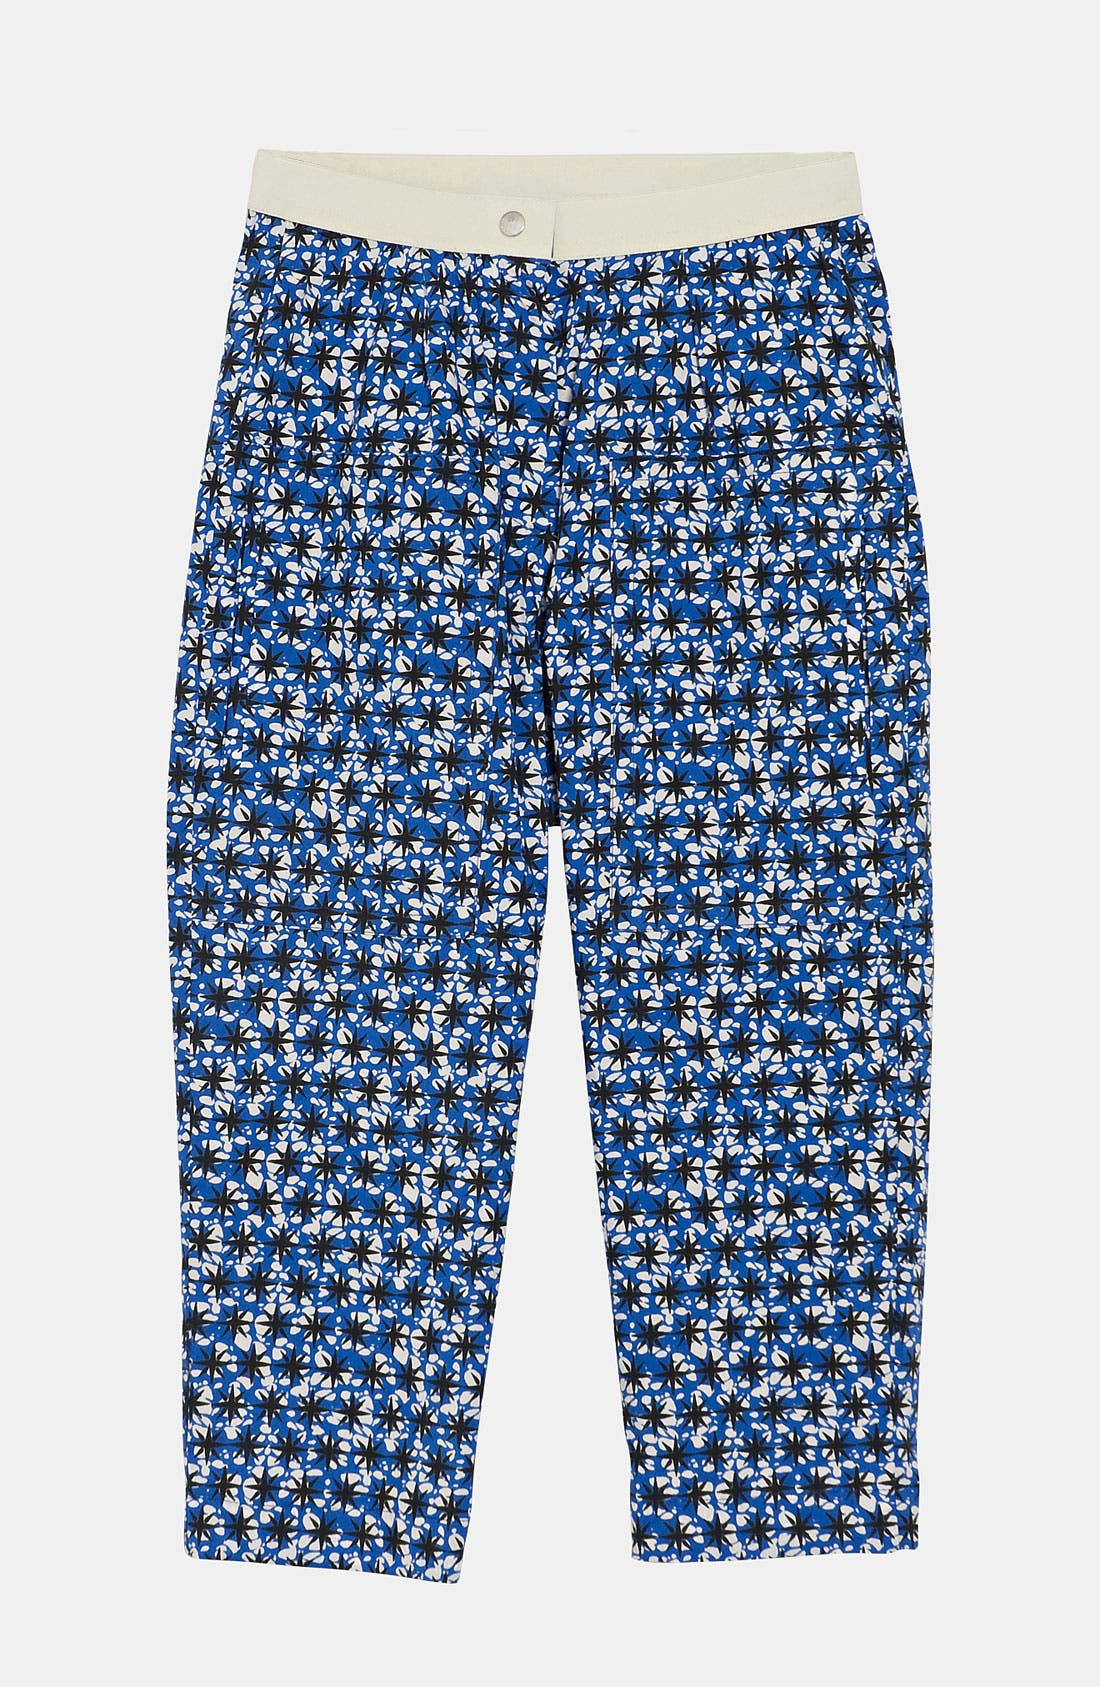 Alternate Image 1 Selected - Marni Star Print Trousers (Little Girls & Big Girls)